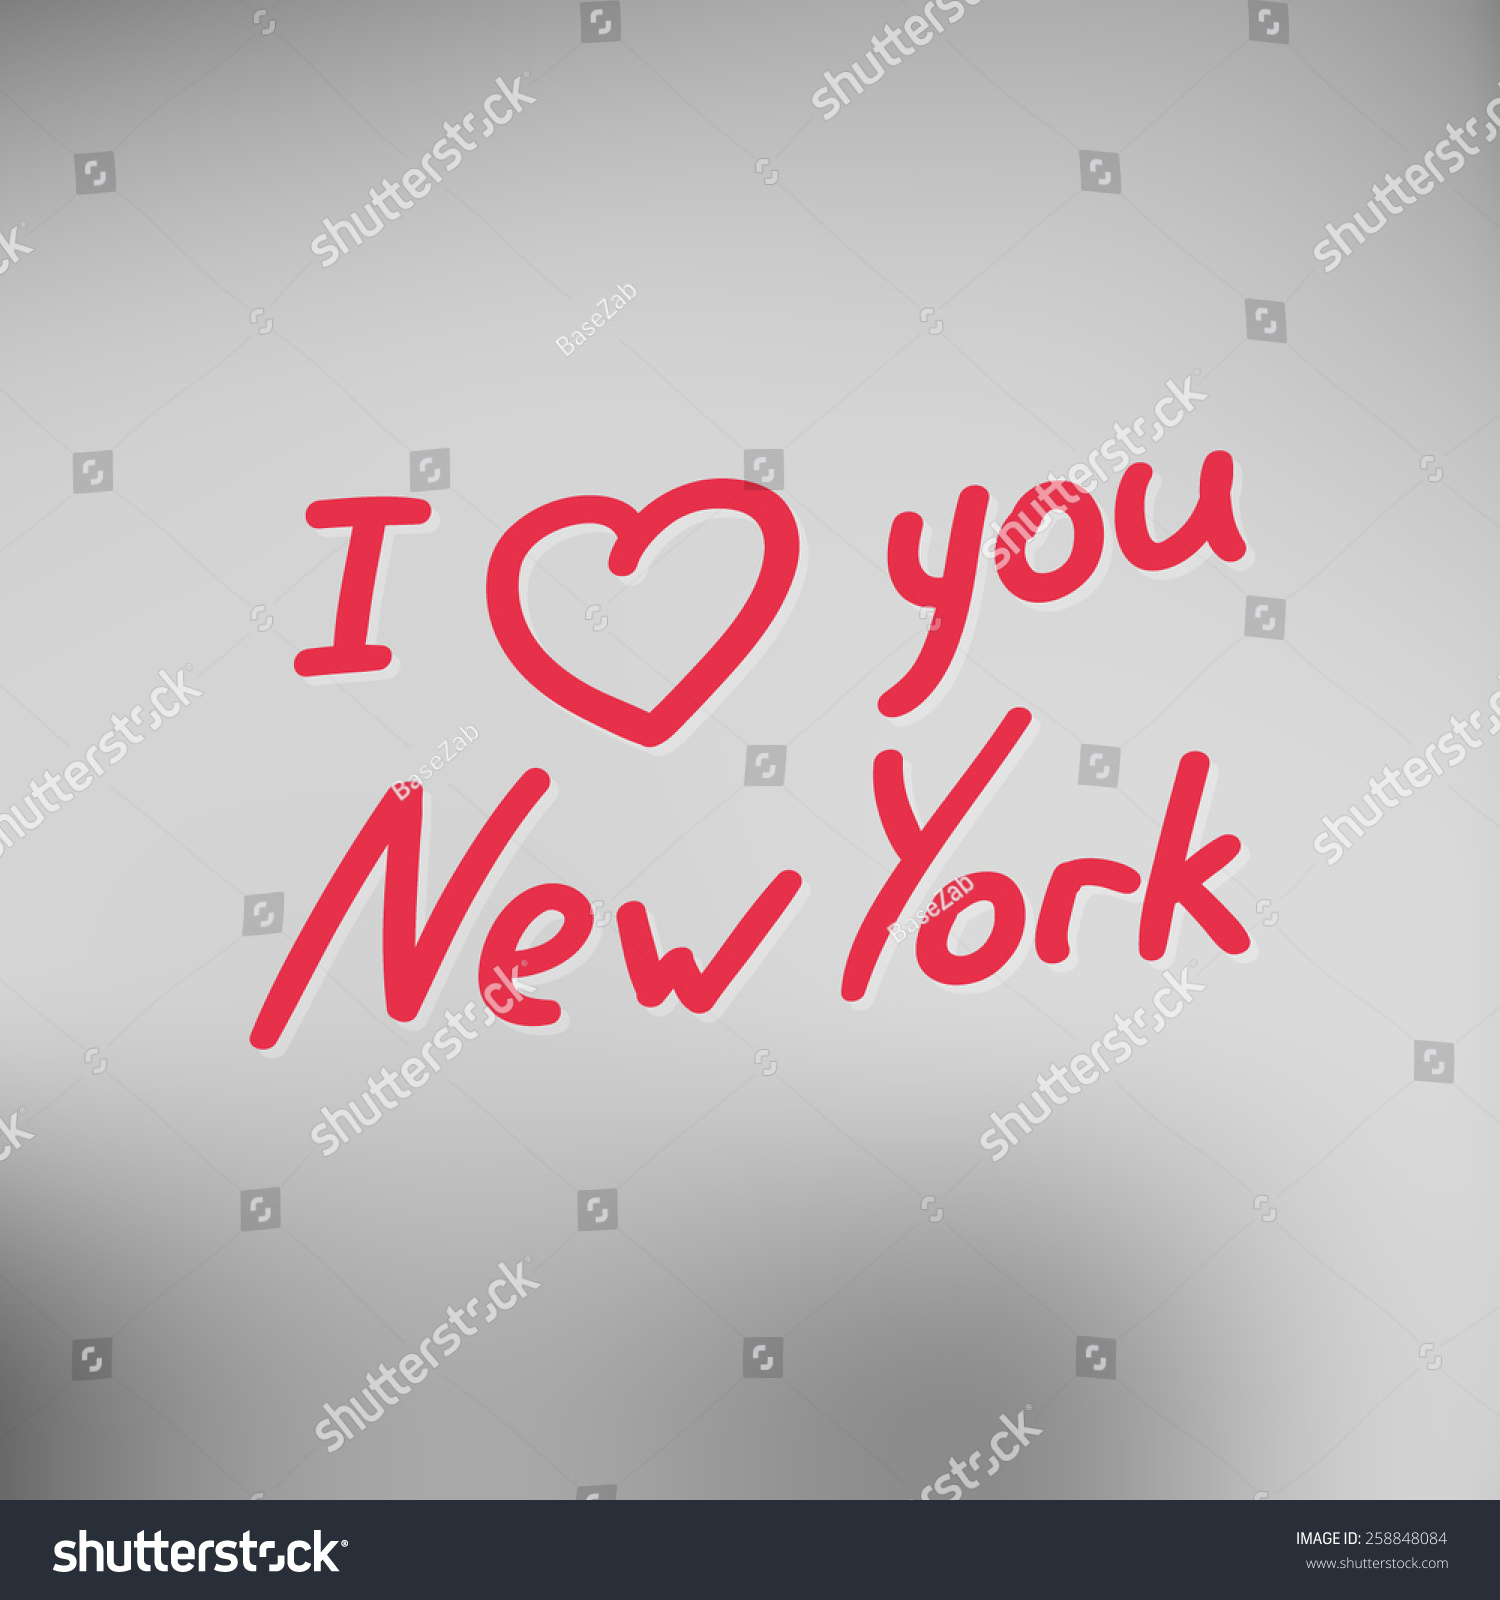 Love new york typographical background lettering stock